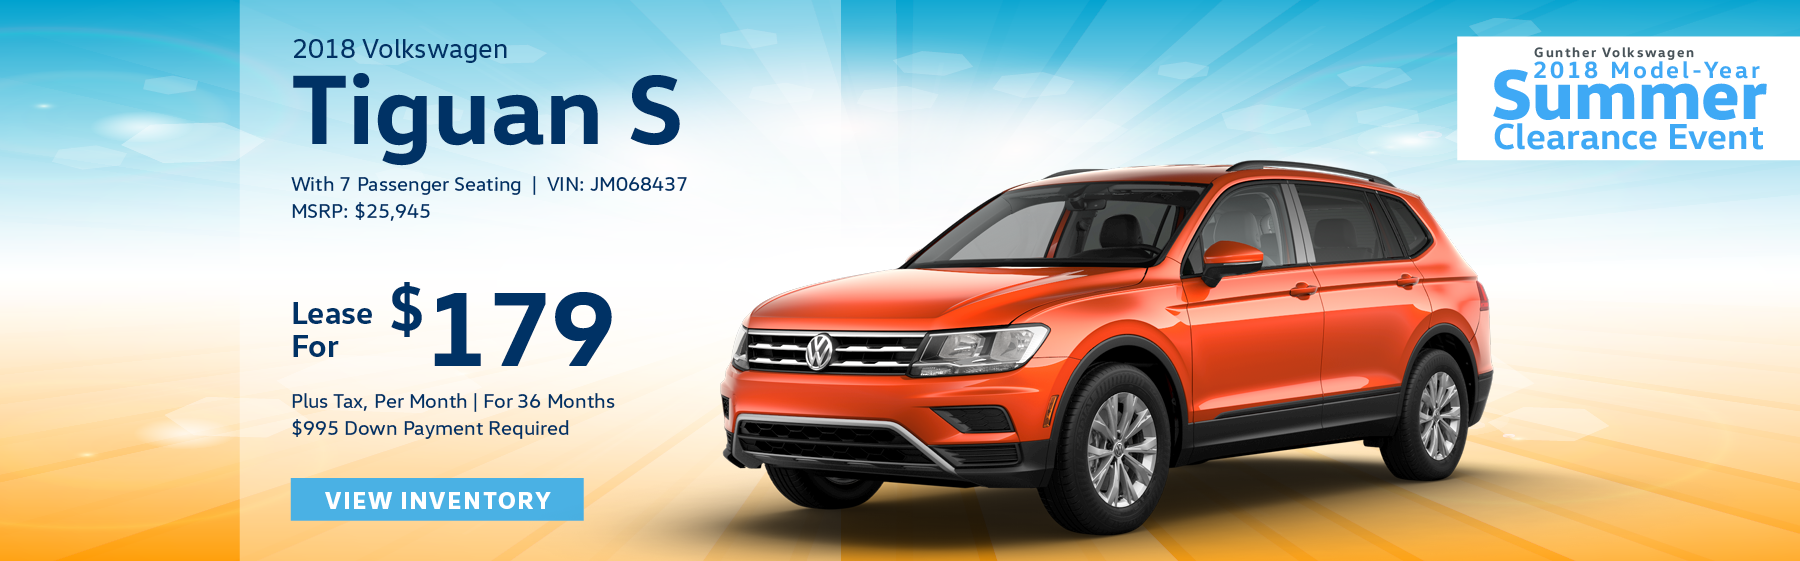 Lease the 2018 Volkswagen Tiguan S with 7 passenger seating for $179 per month, plus tax for 36 months. Click here to view inventory.